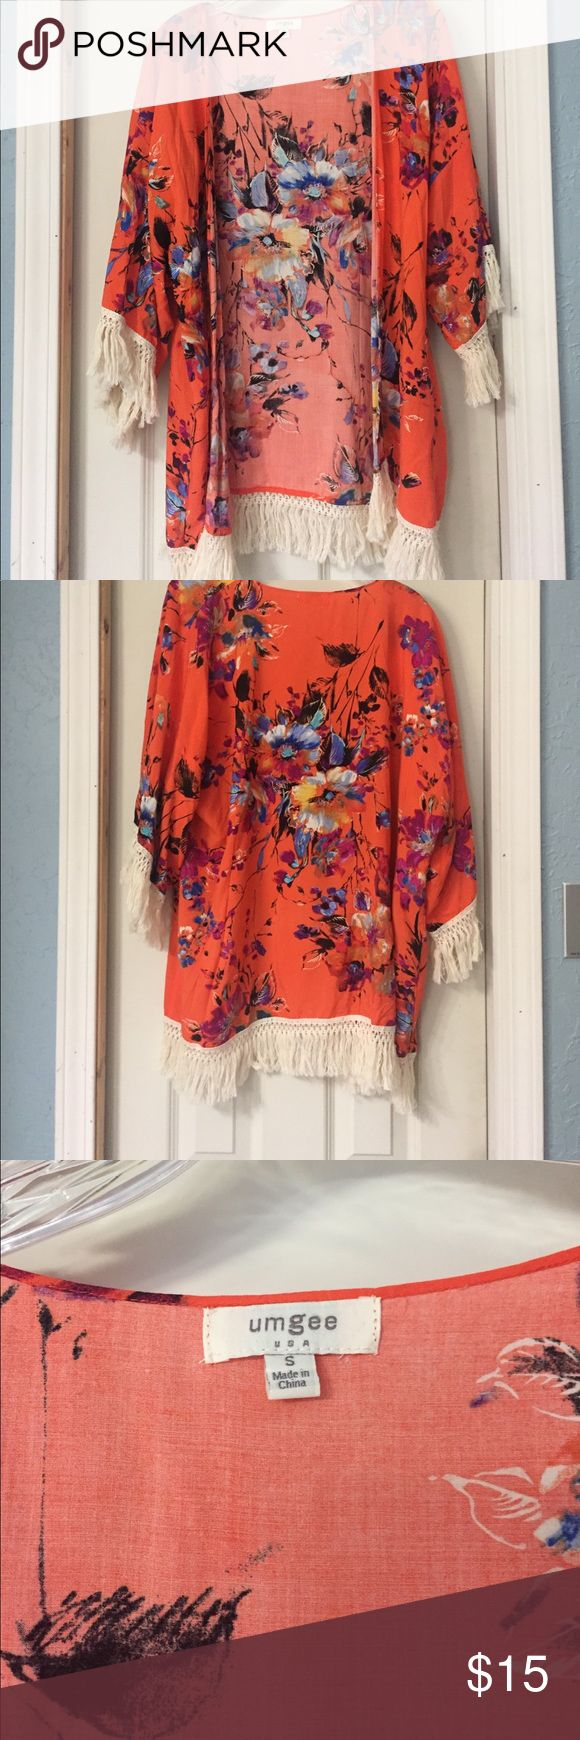 Floral Cardigan Neon colored floral cardigan with ivory fringe size small.  Great condition.  Never worn.  Smoke free home.  No trades.  Will consider offers. Umgee Sweaters Cardigans